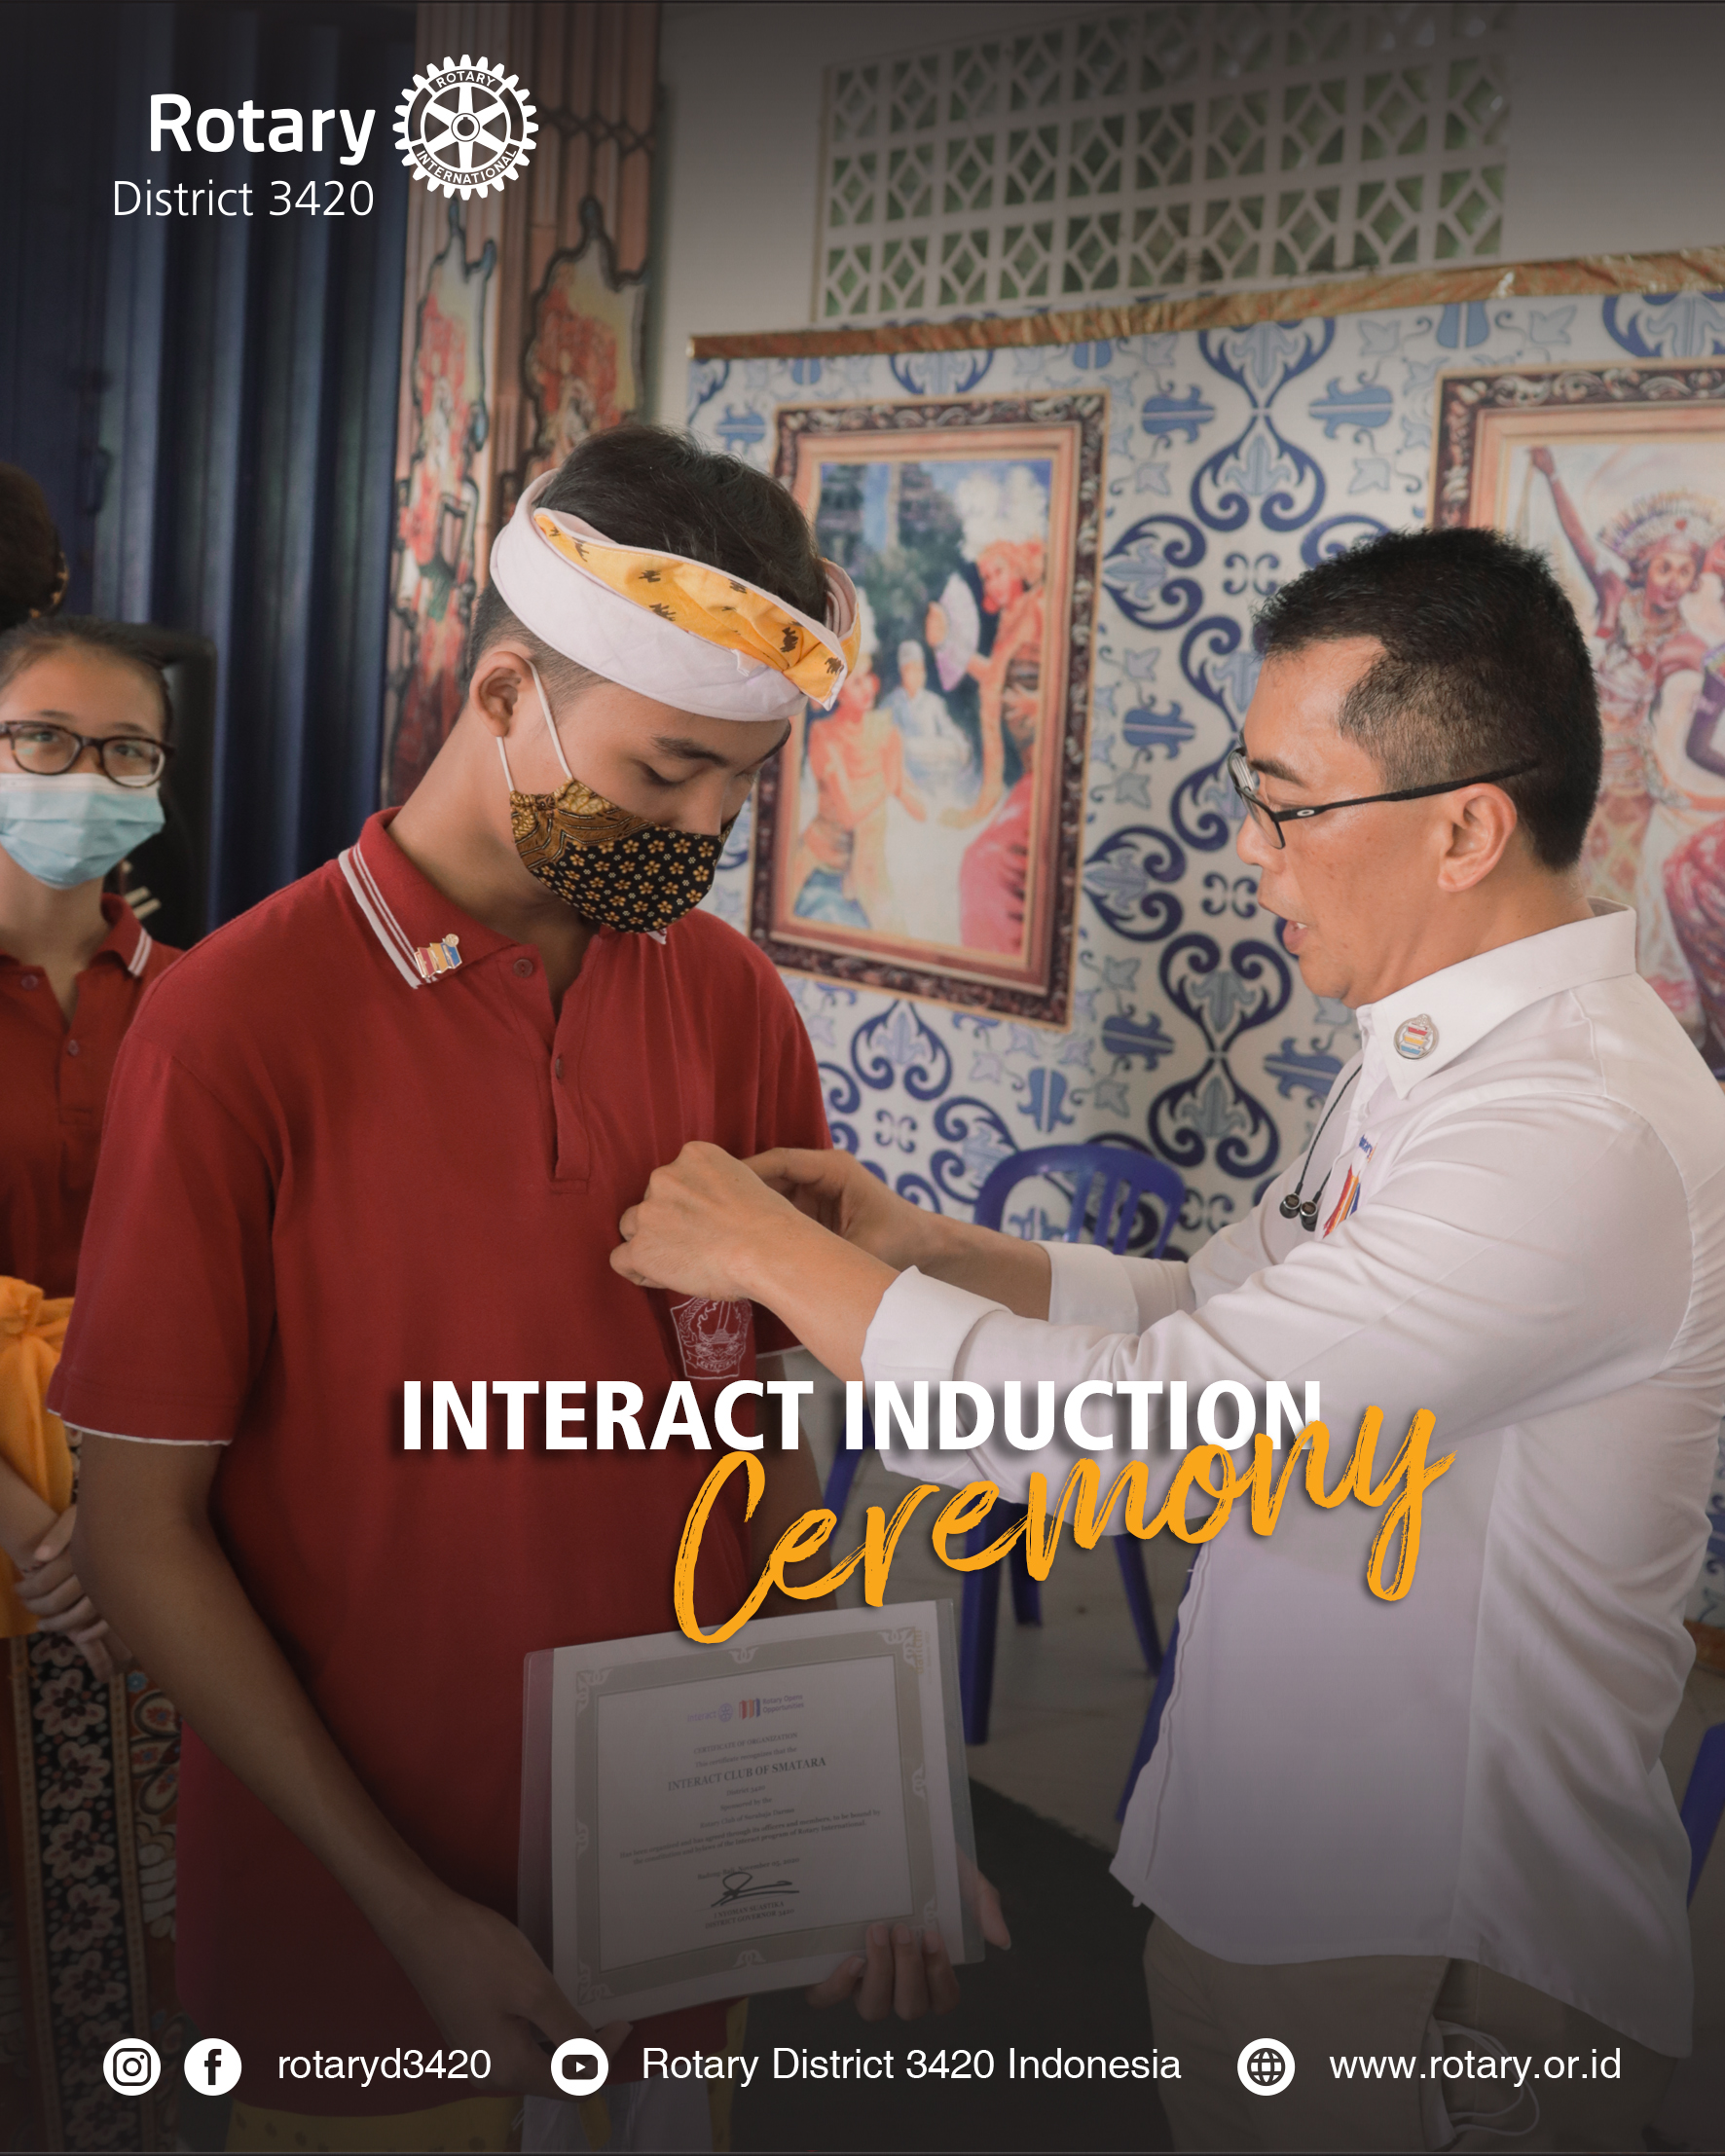 Interact Induction Ceremony